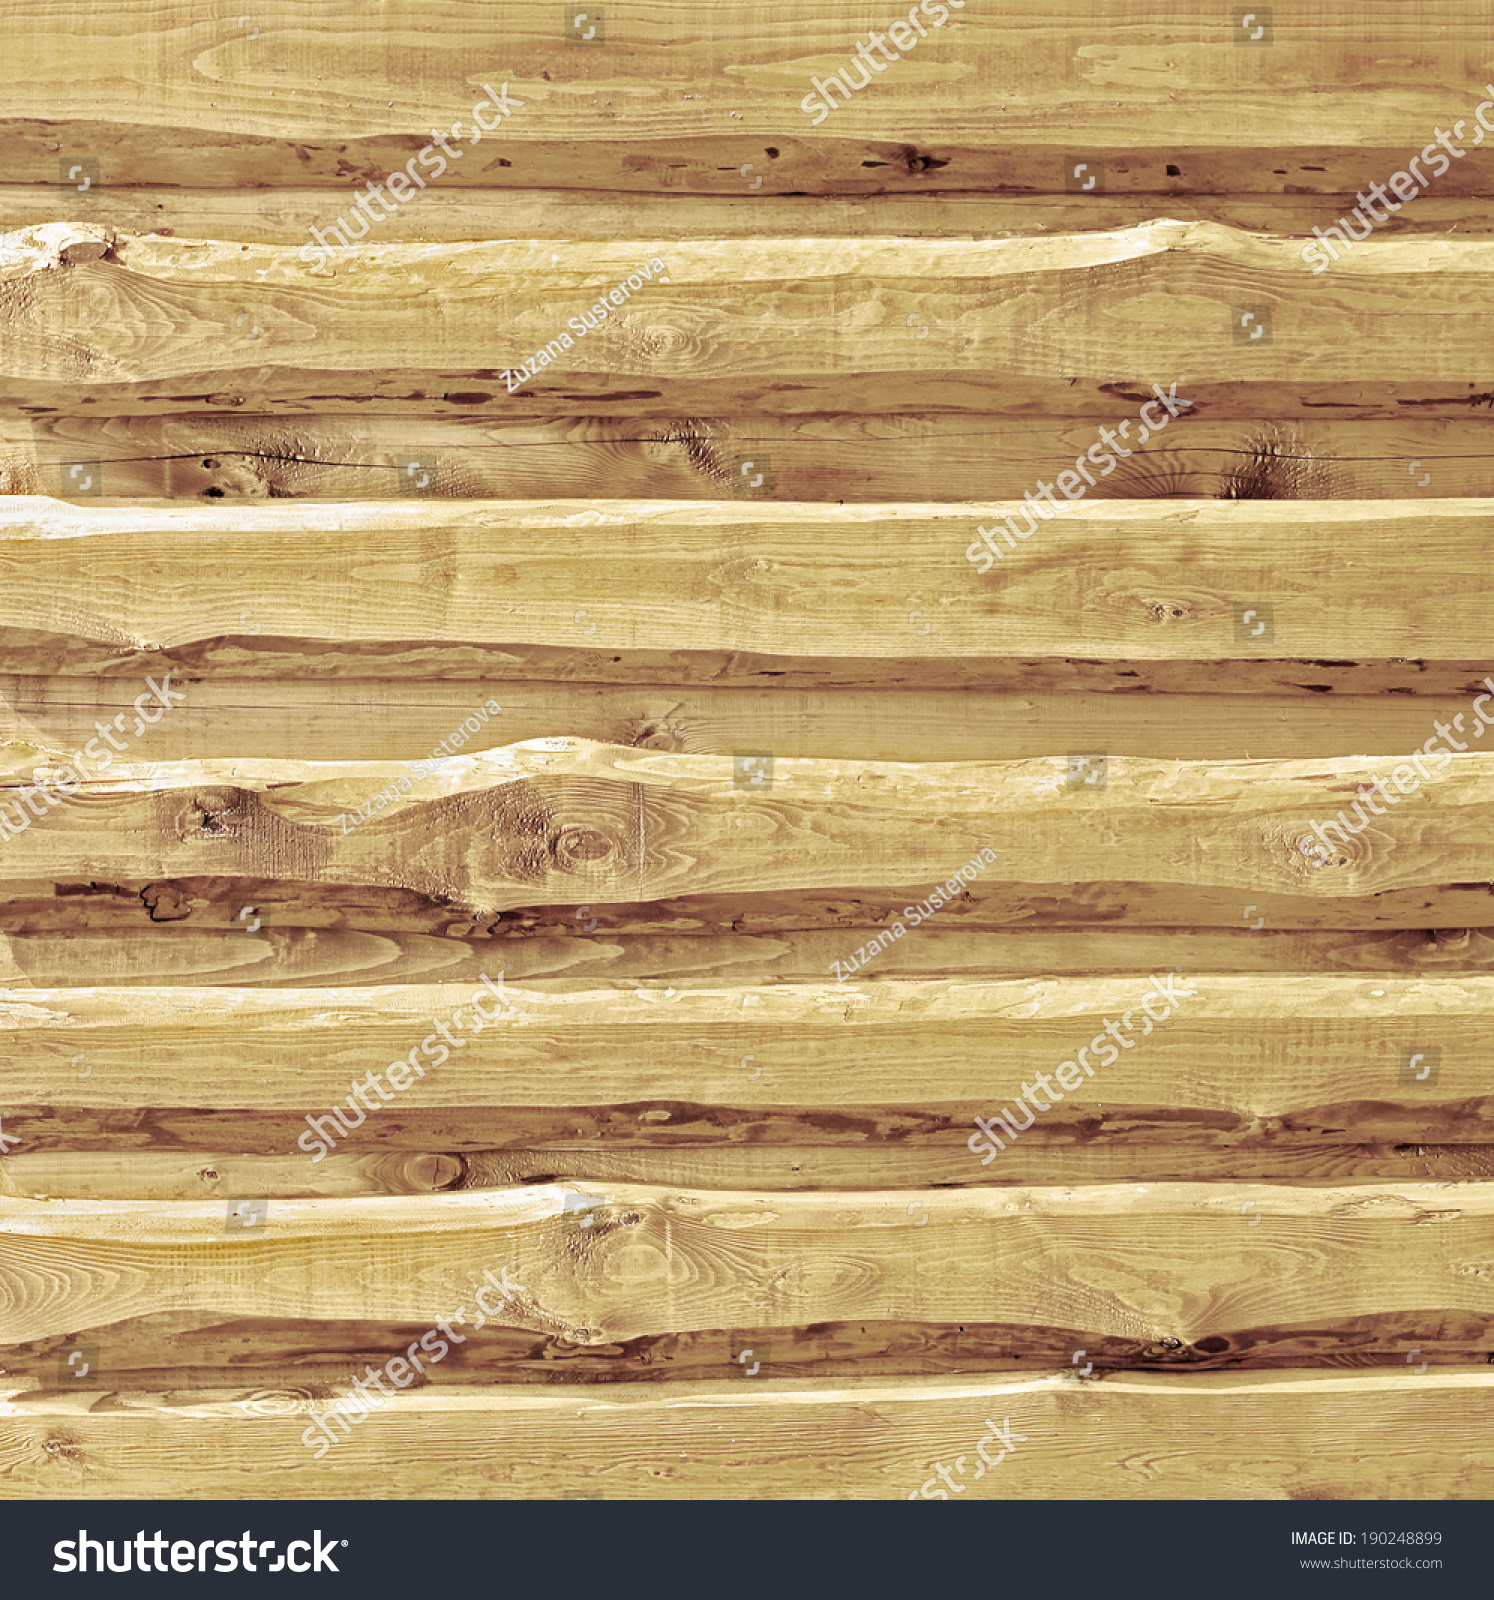 Quot Live Edge Quot Board Siding Spruce Wood In Modern Grey